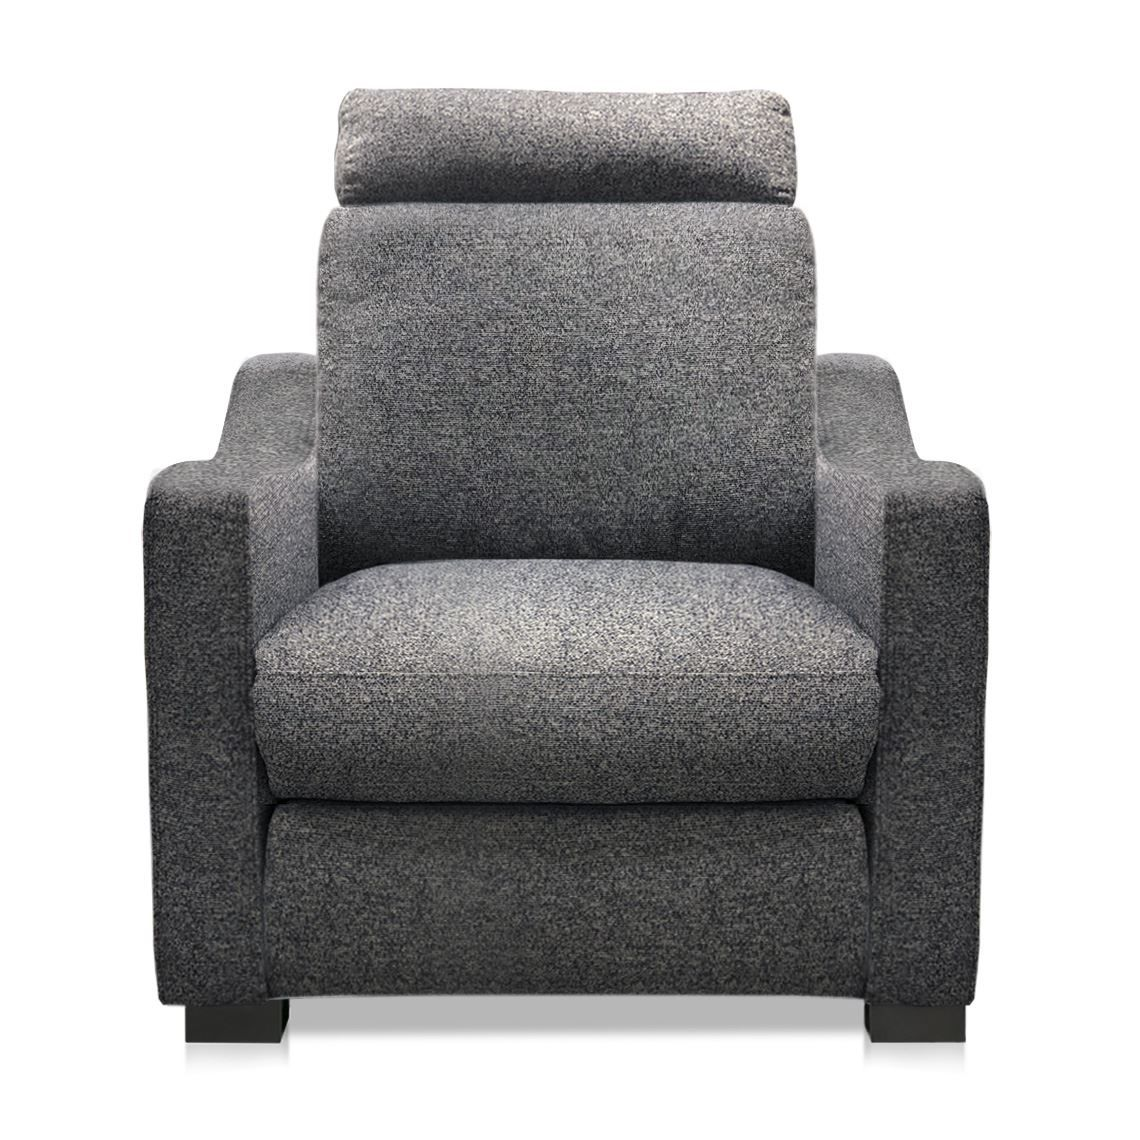 Signature Slope Fabric Electric Recliner Armchair Standard Denim Reclining Armchair Armchair Recliner